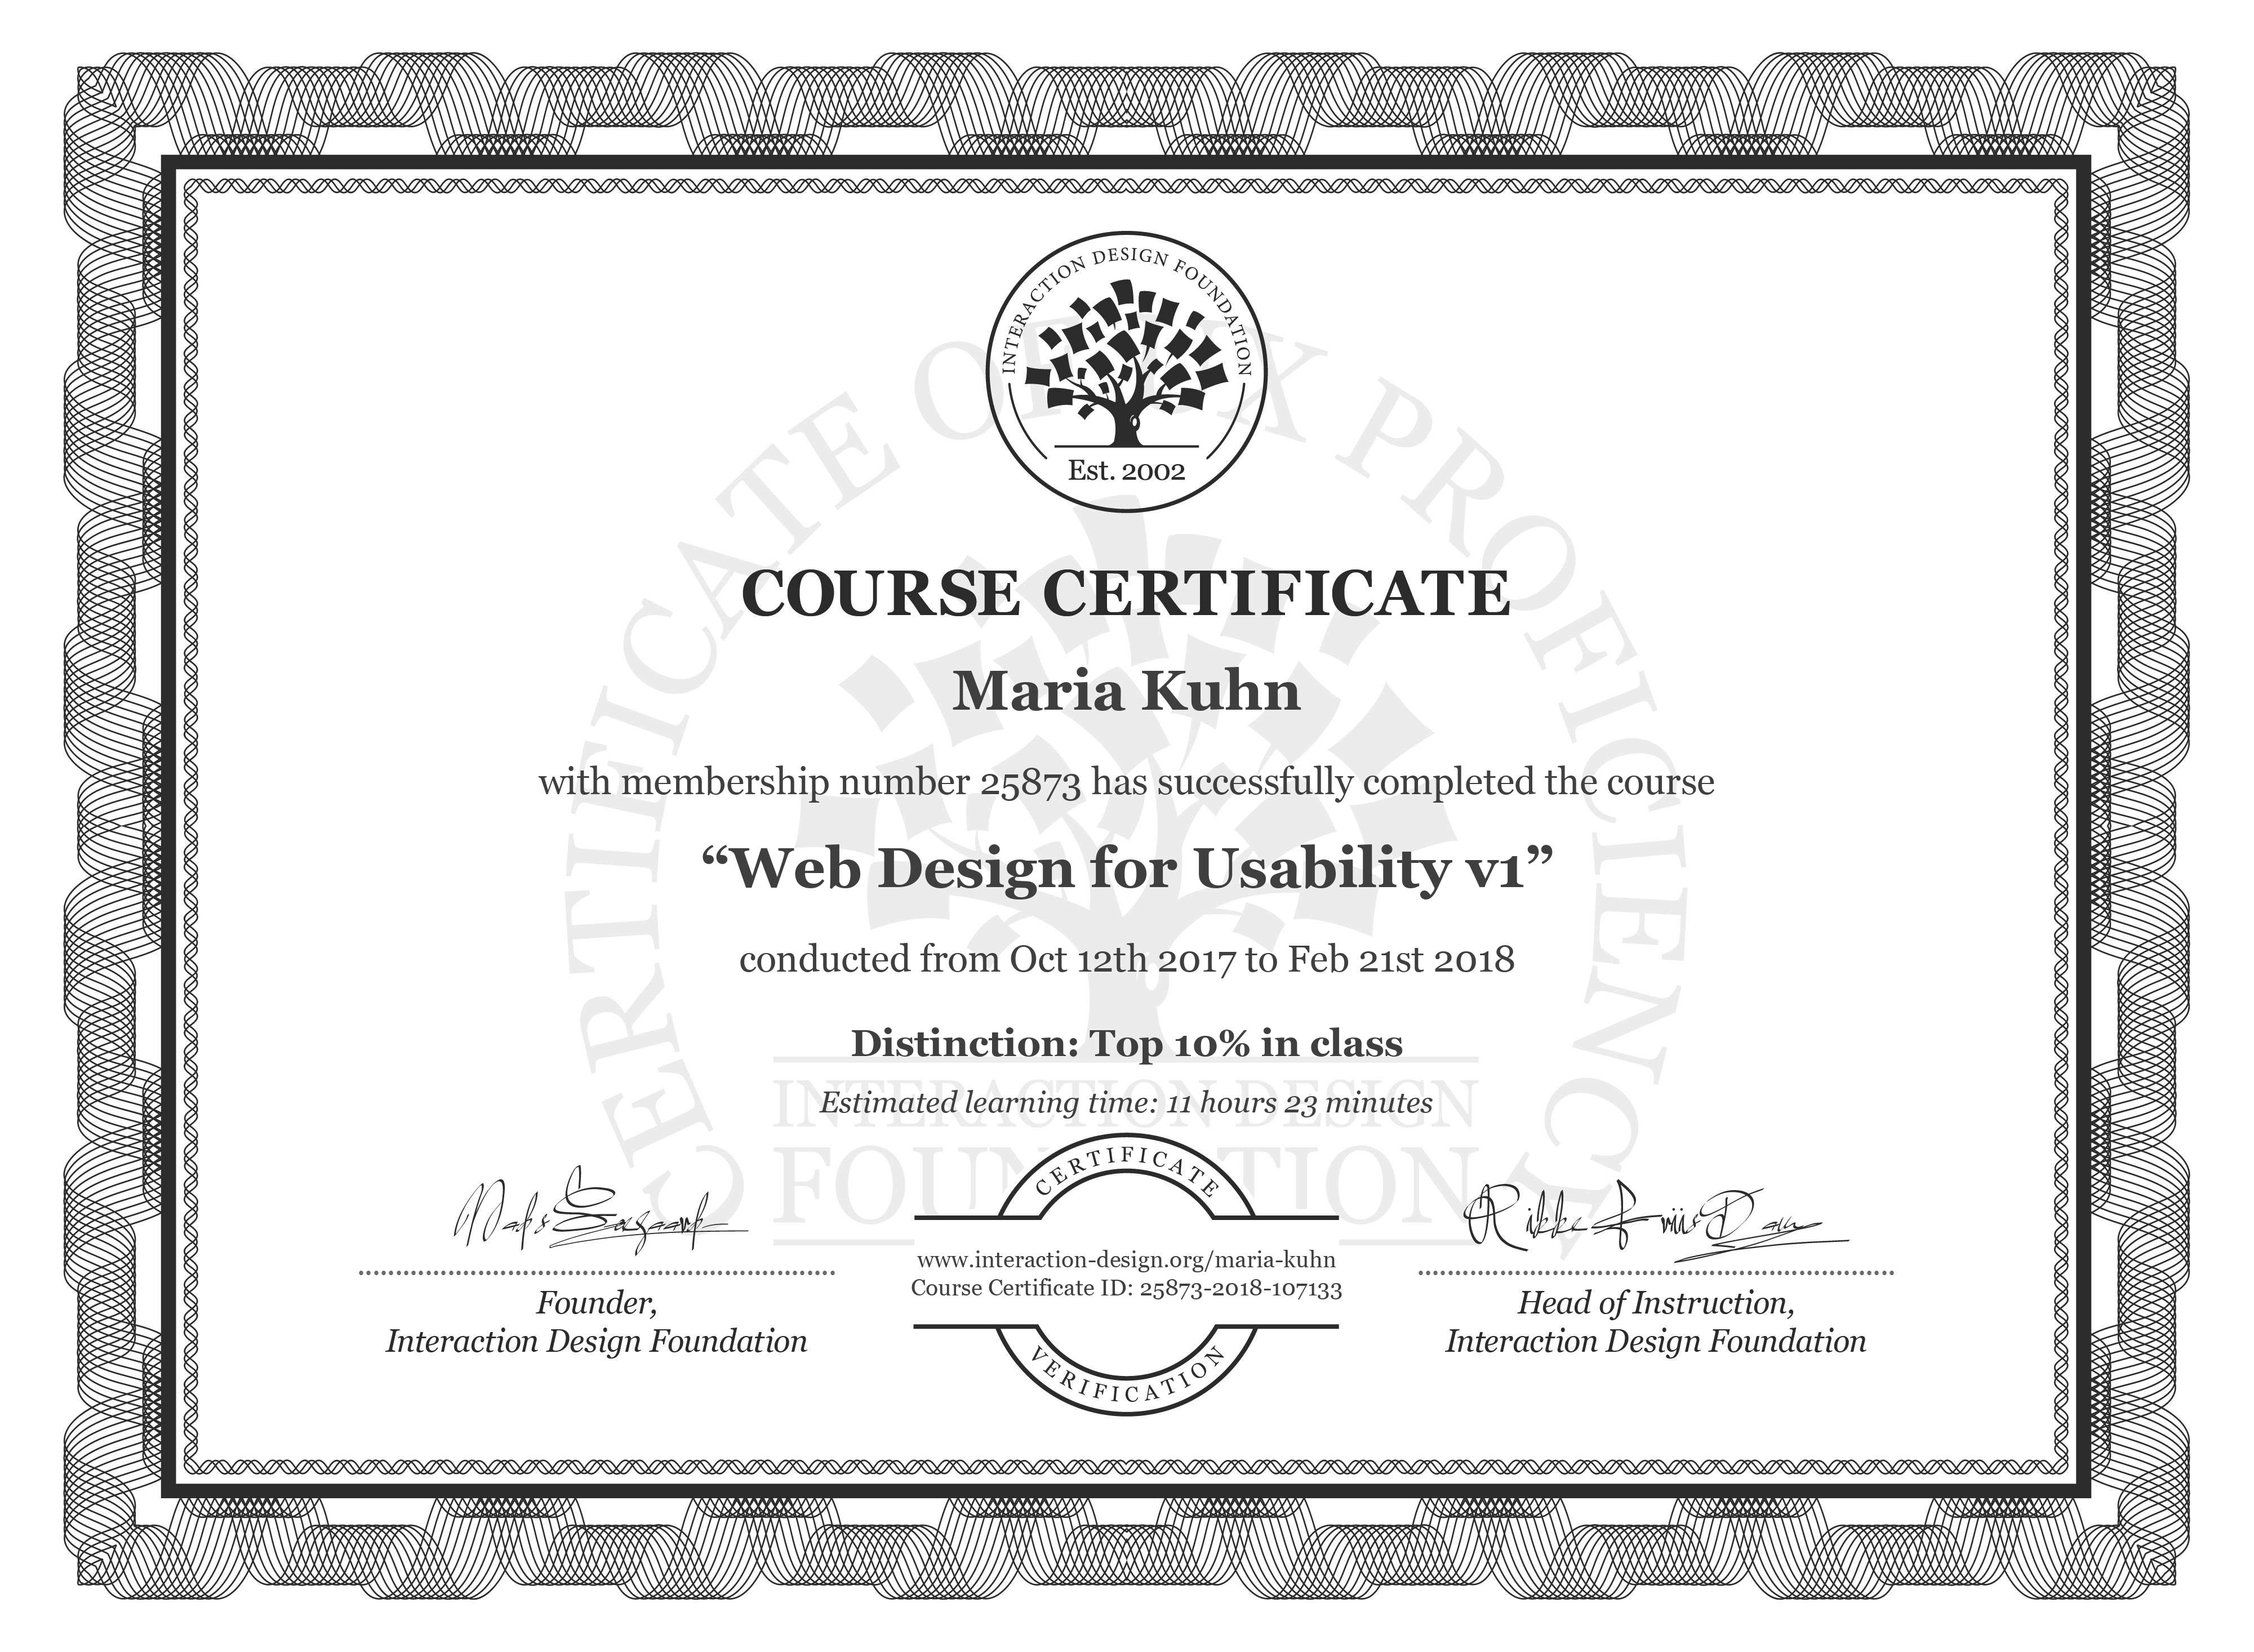 Maria Kuhn's Course Certificate: Web Design for Usability